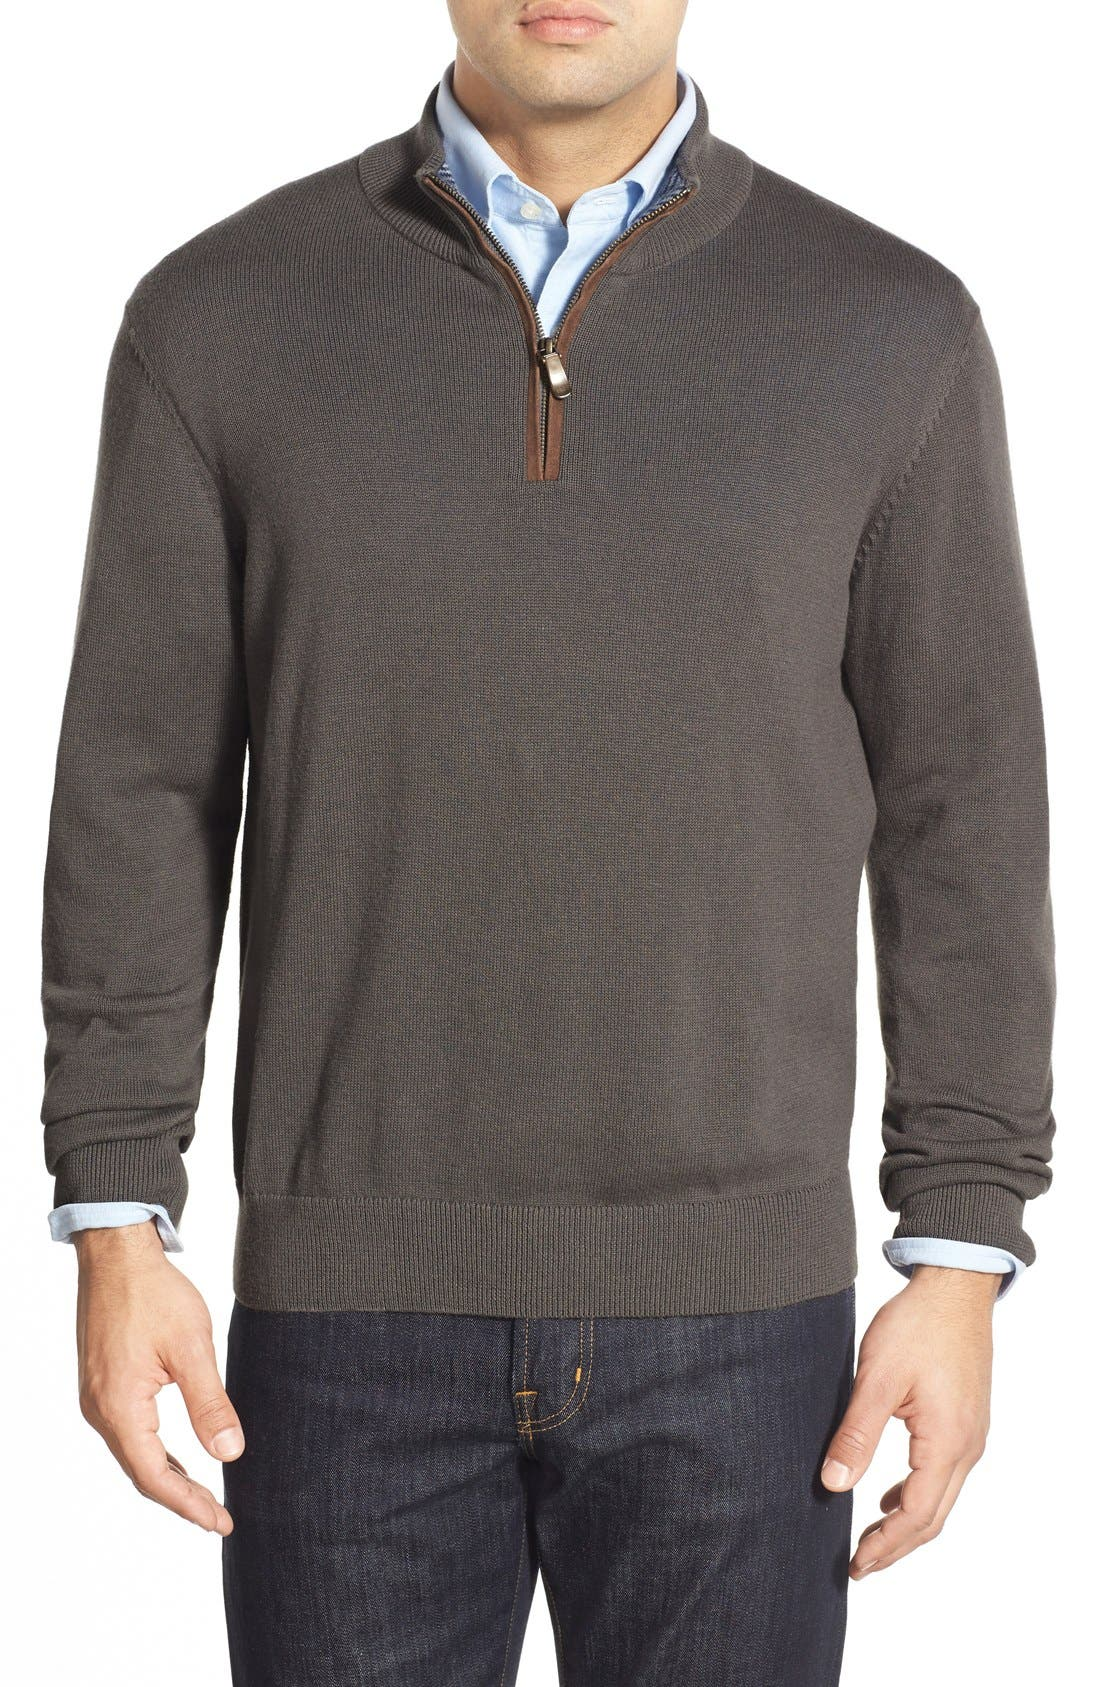 'Round Hill' Quarter Zip Sweater with Suede Elbow Patches, Main, color, 025